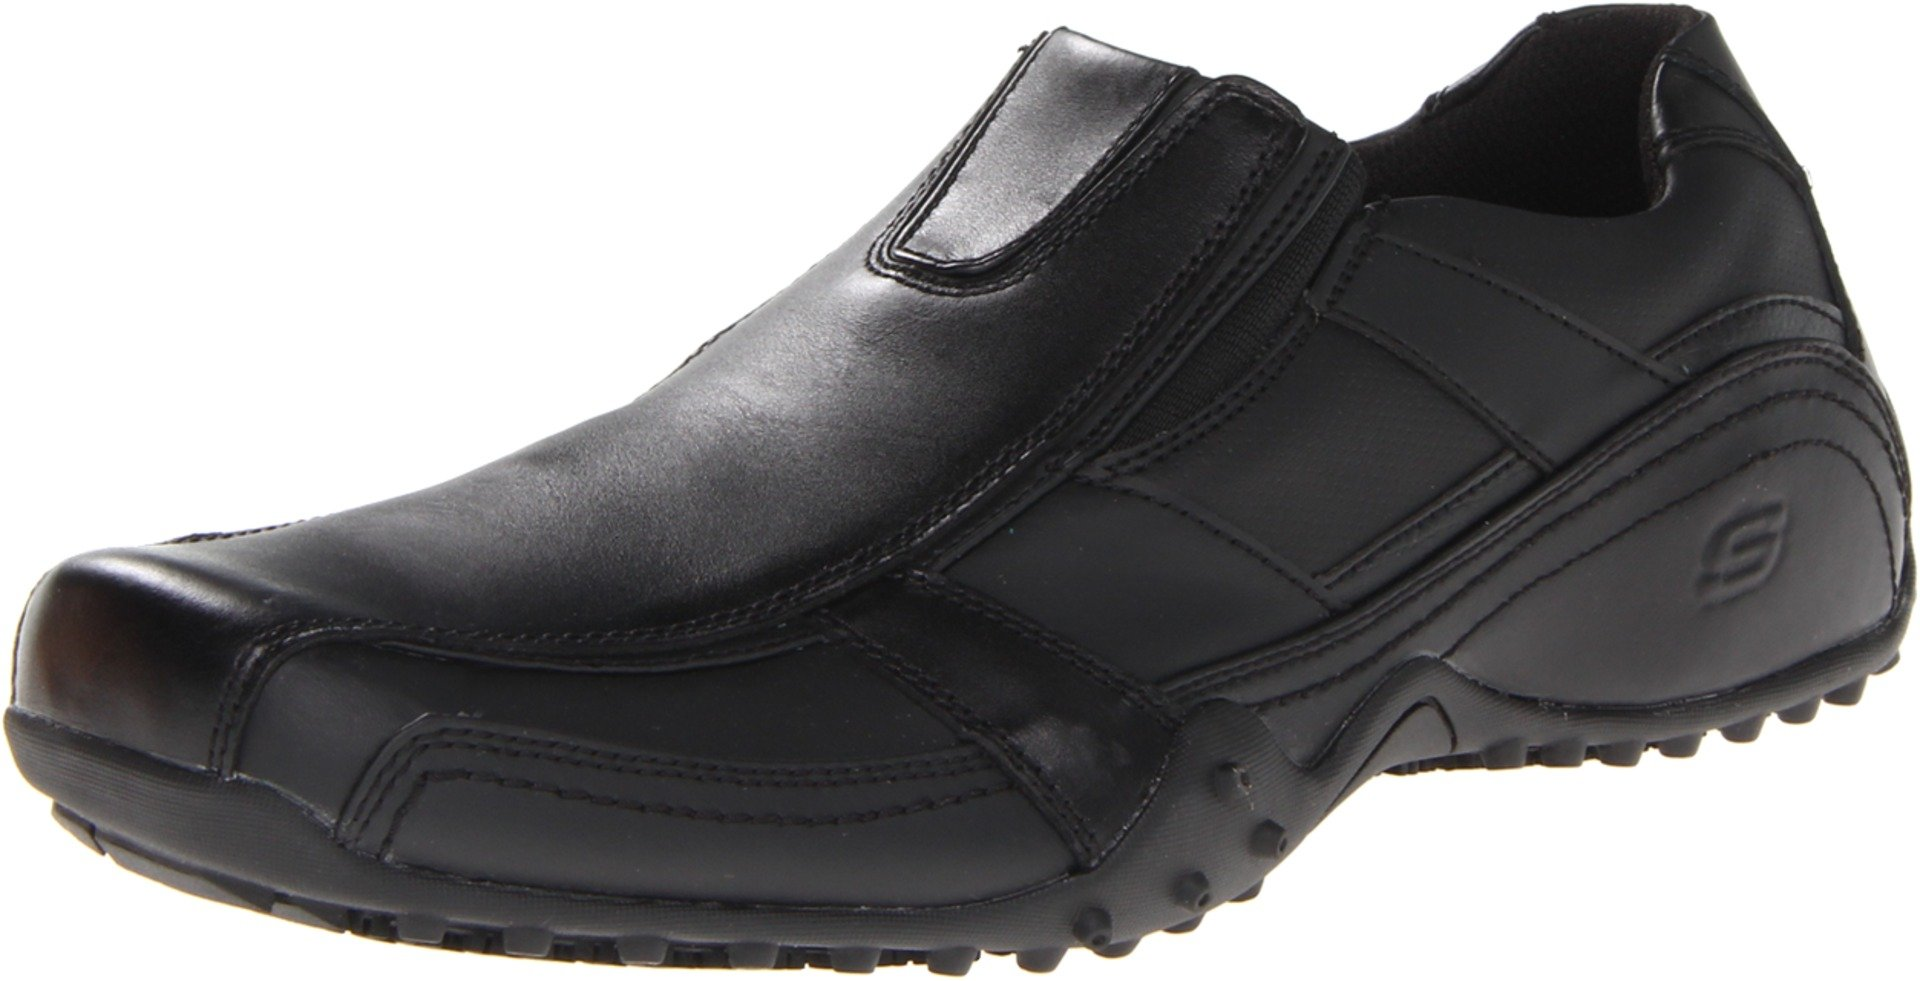 Skechers for Work Men's Rockland-Hooper Work Boot, Black, 11 M US